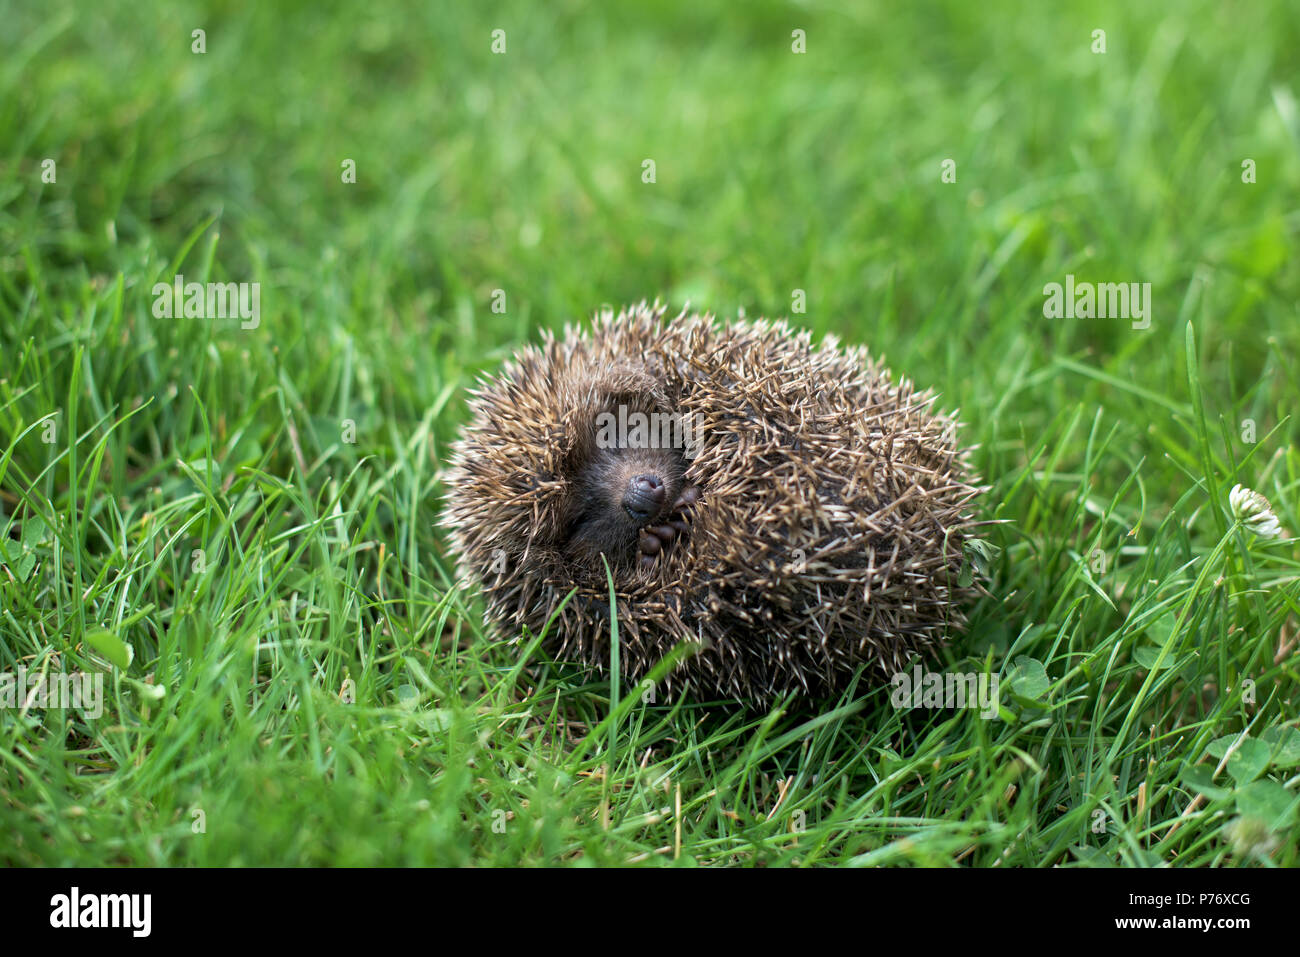 Small hedgehog in a ball in a grass - Stock Image